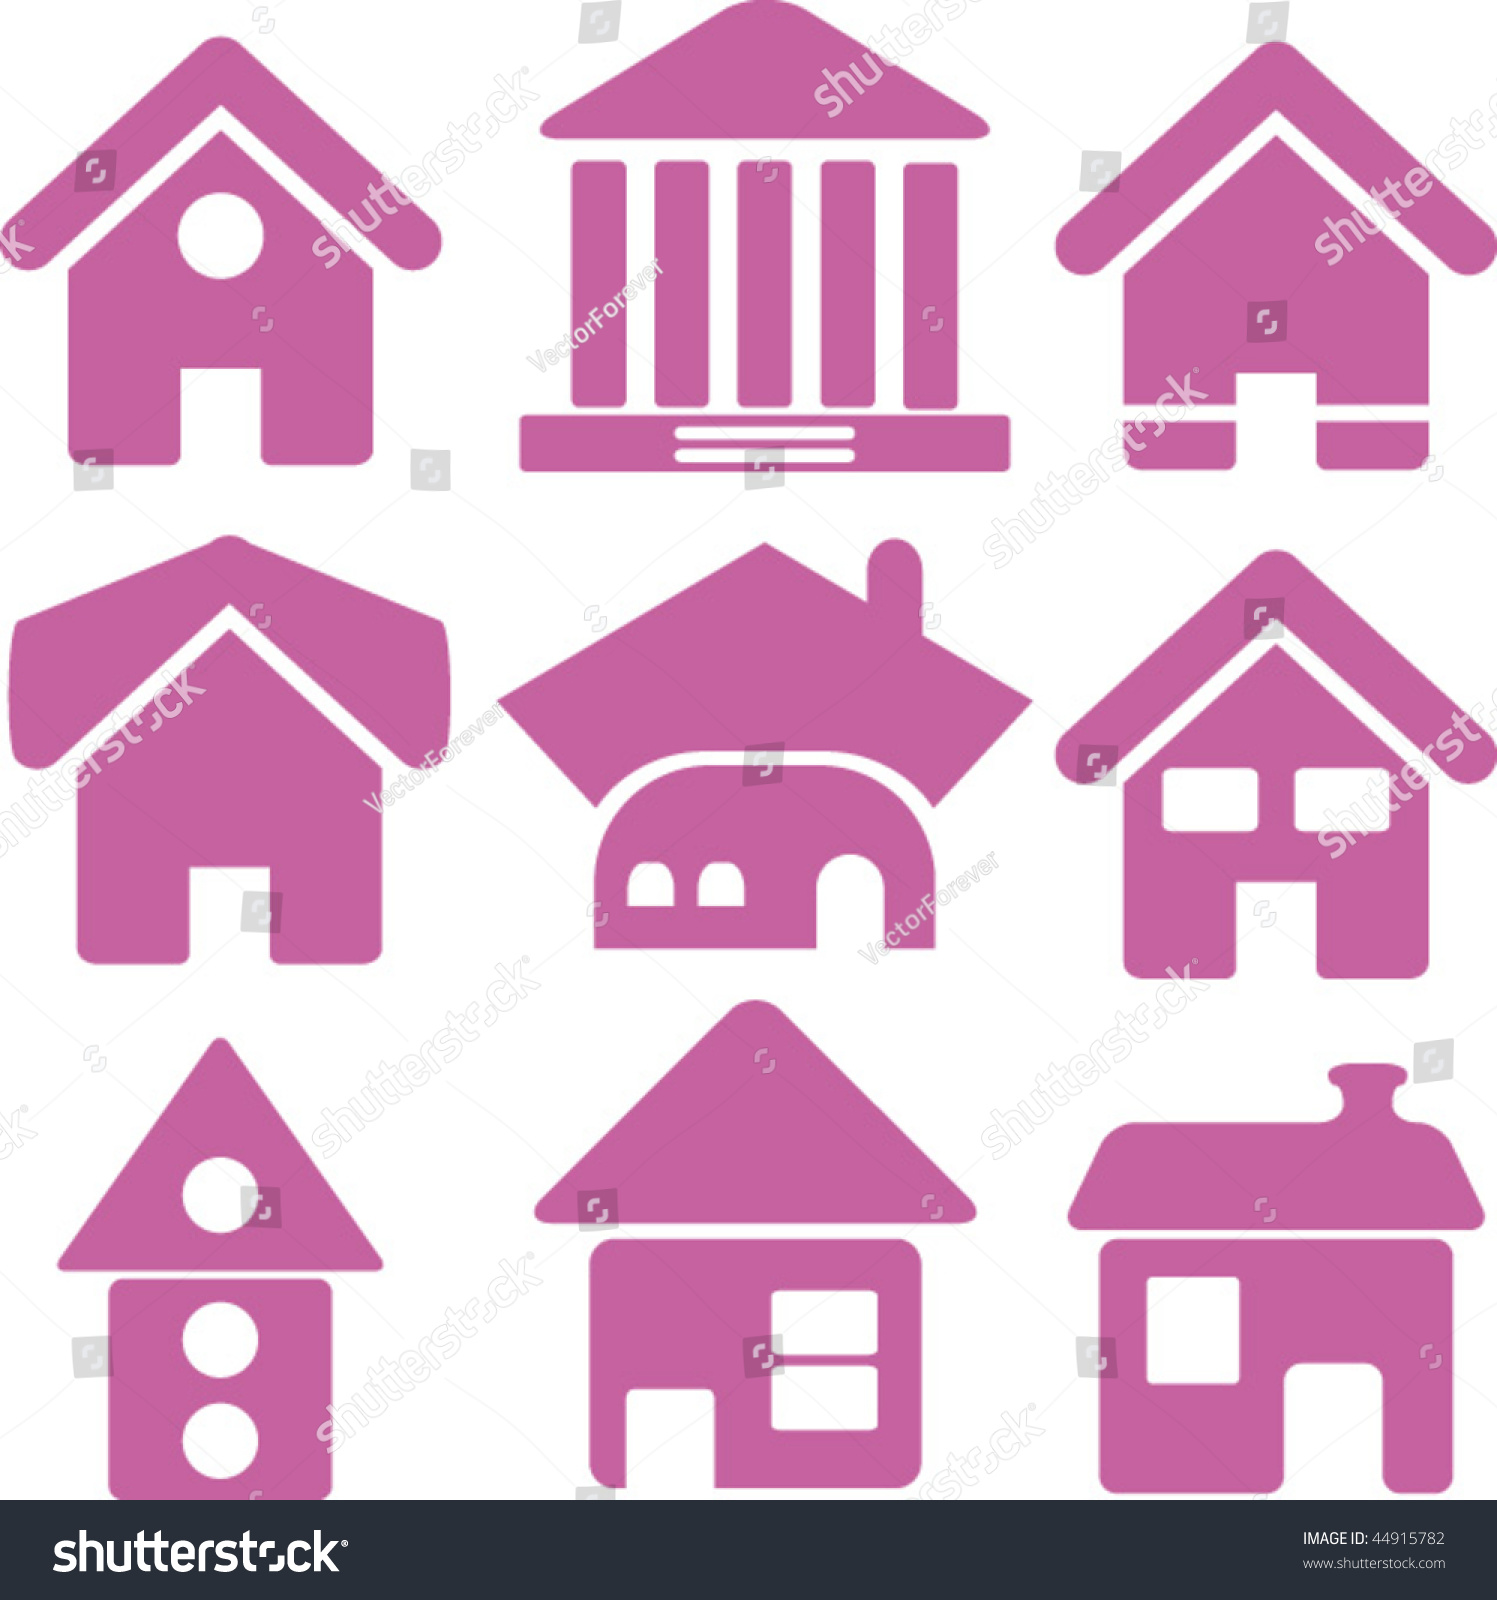 Pink Houses Vector Stock Vector (Royalty Free) 44915782 - Shutterstock